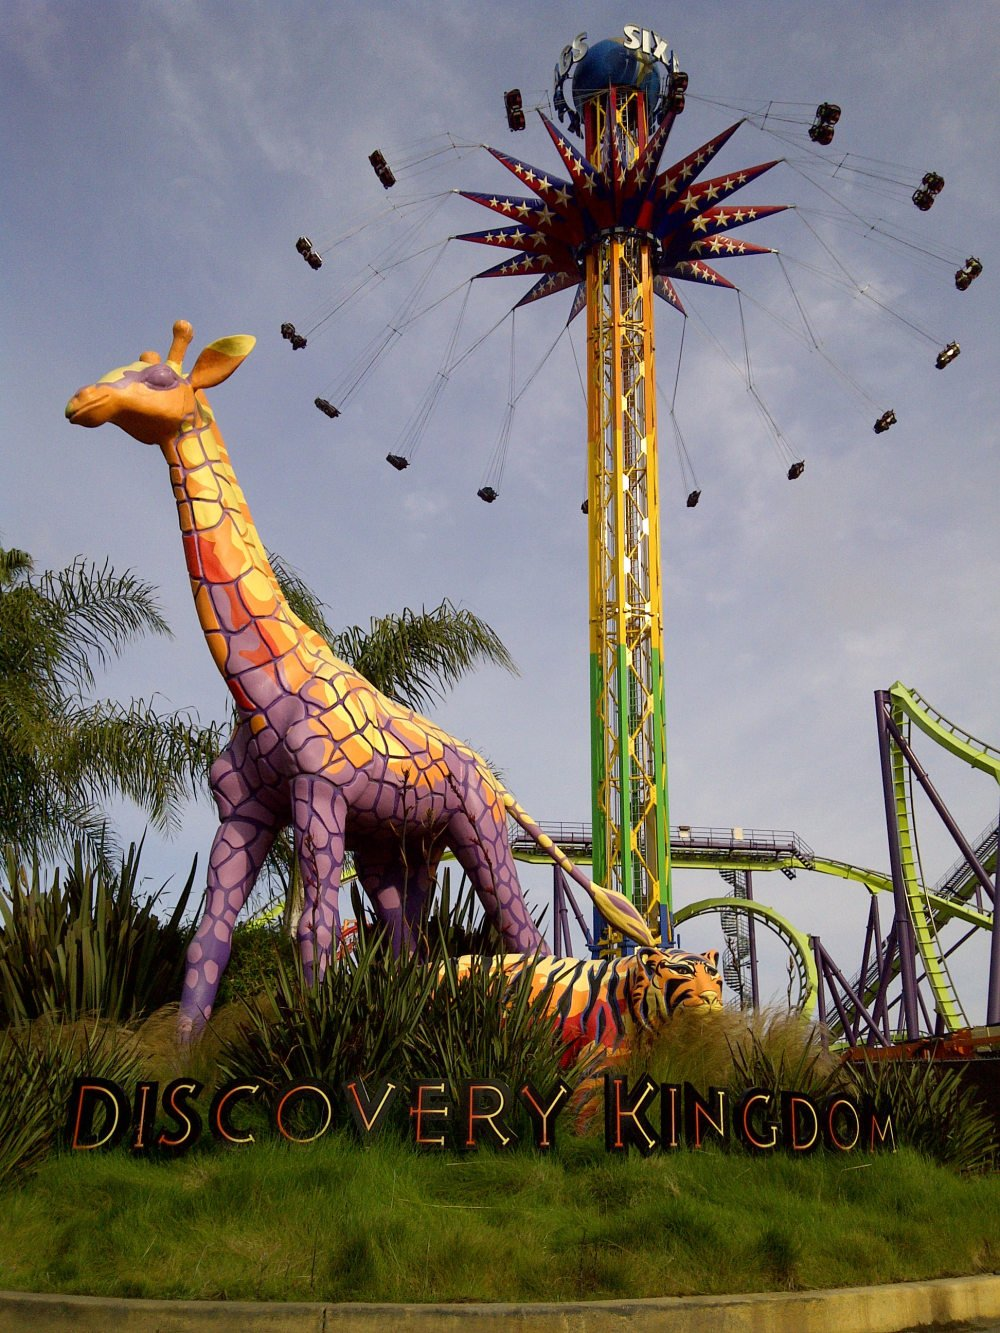 SkyScreamer 2